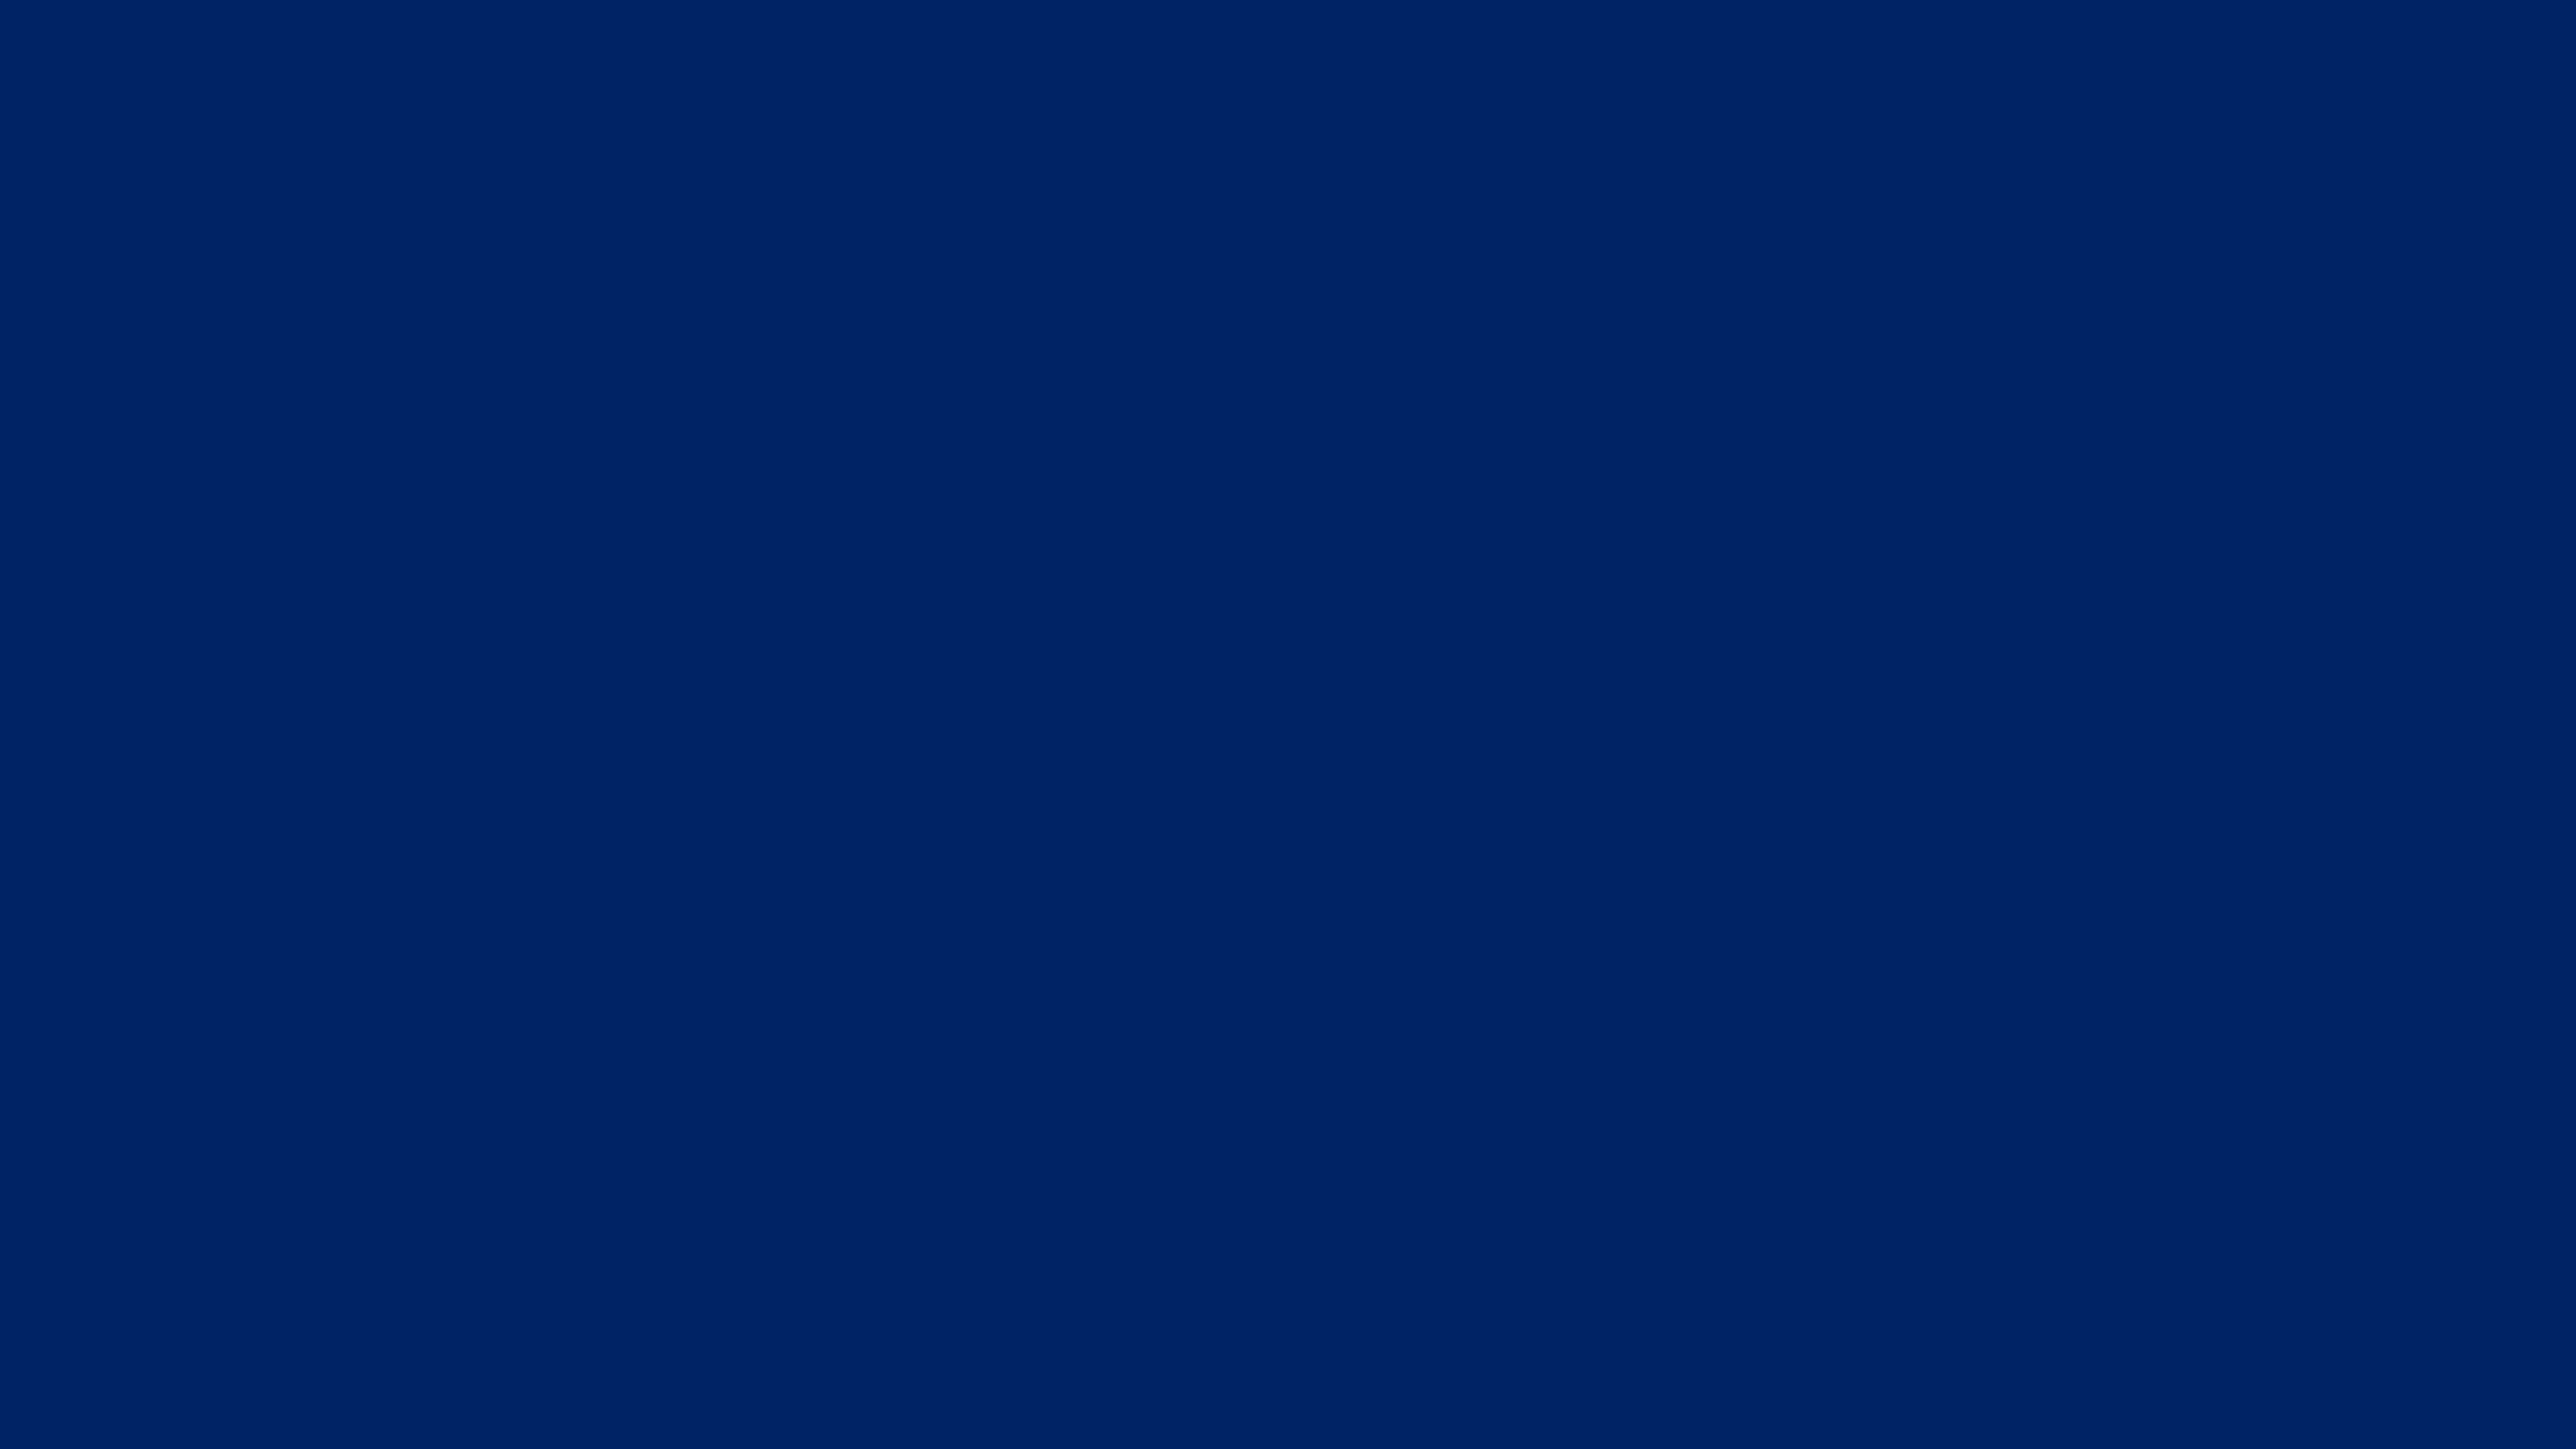 4096x2304 Royal Blue Traditional Solid Color Background